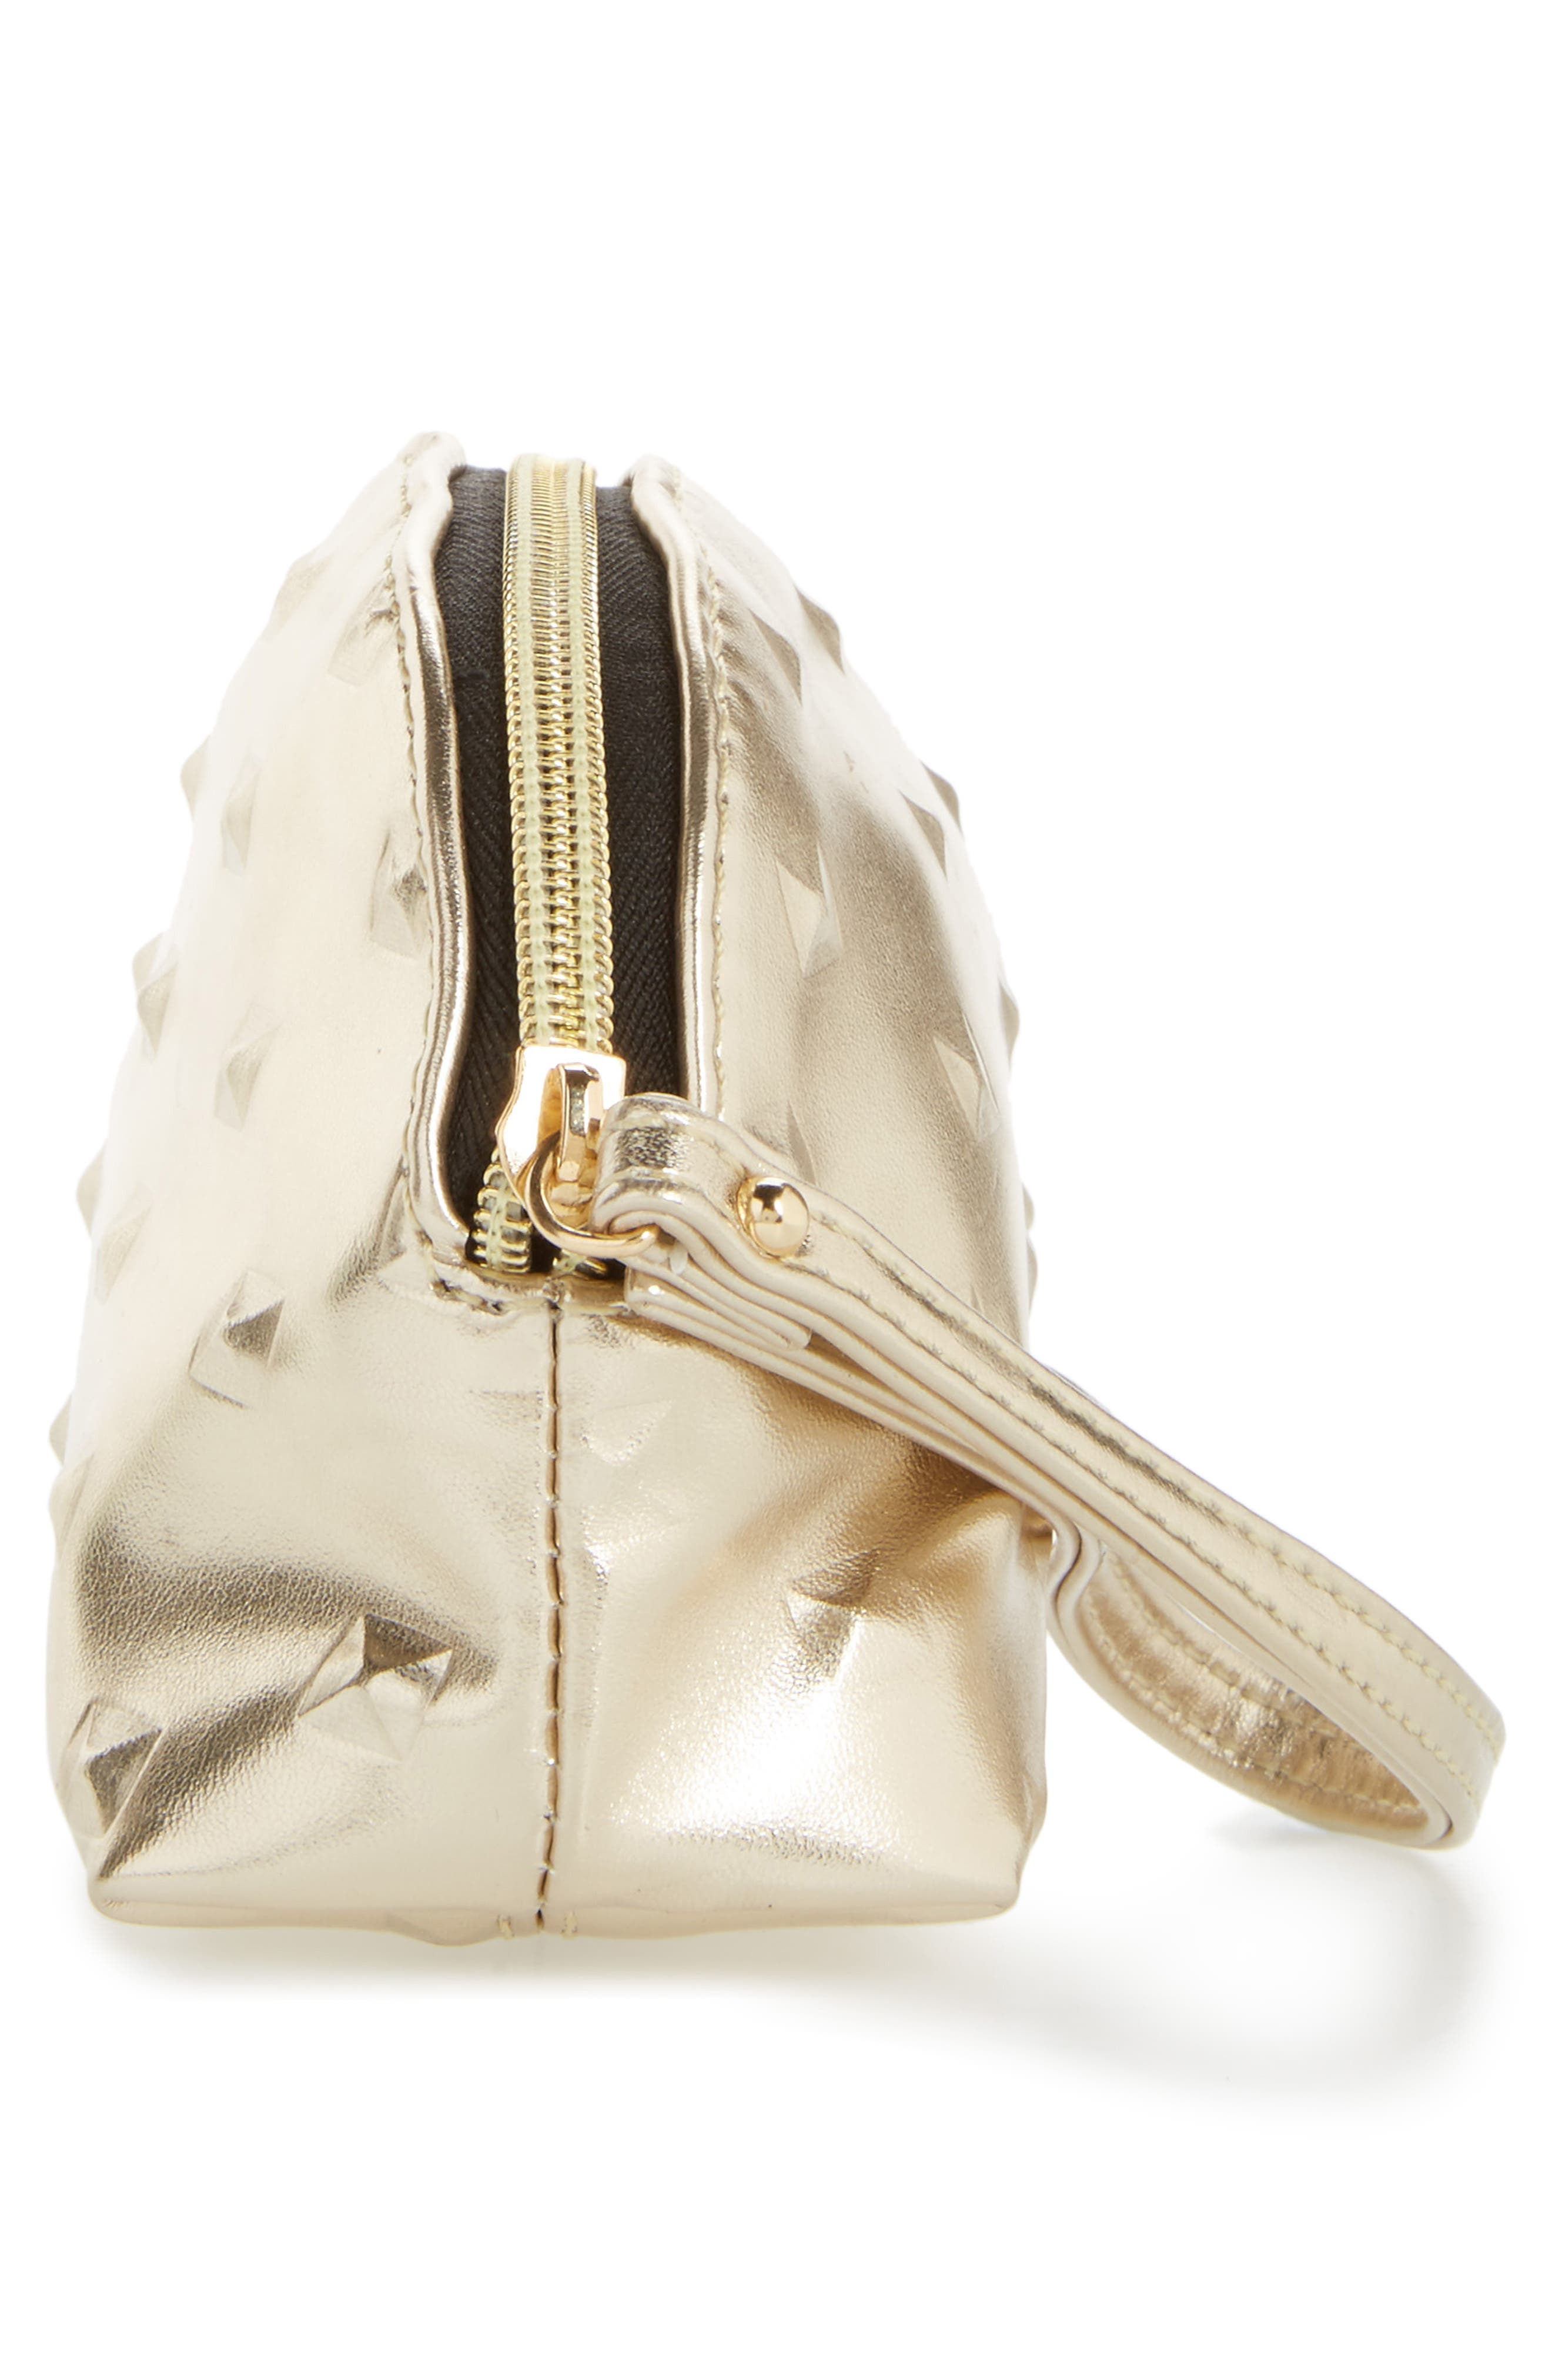 Diamond Embossed Metallic Cosmetics Bag,                             Alternate thumbnail 4, color,